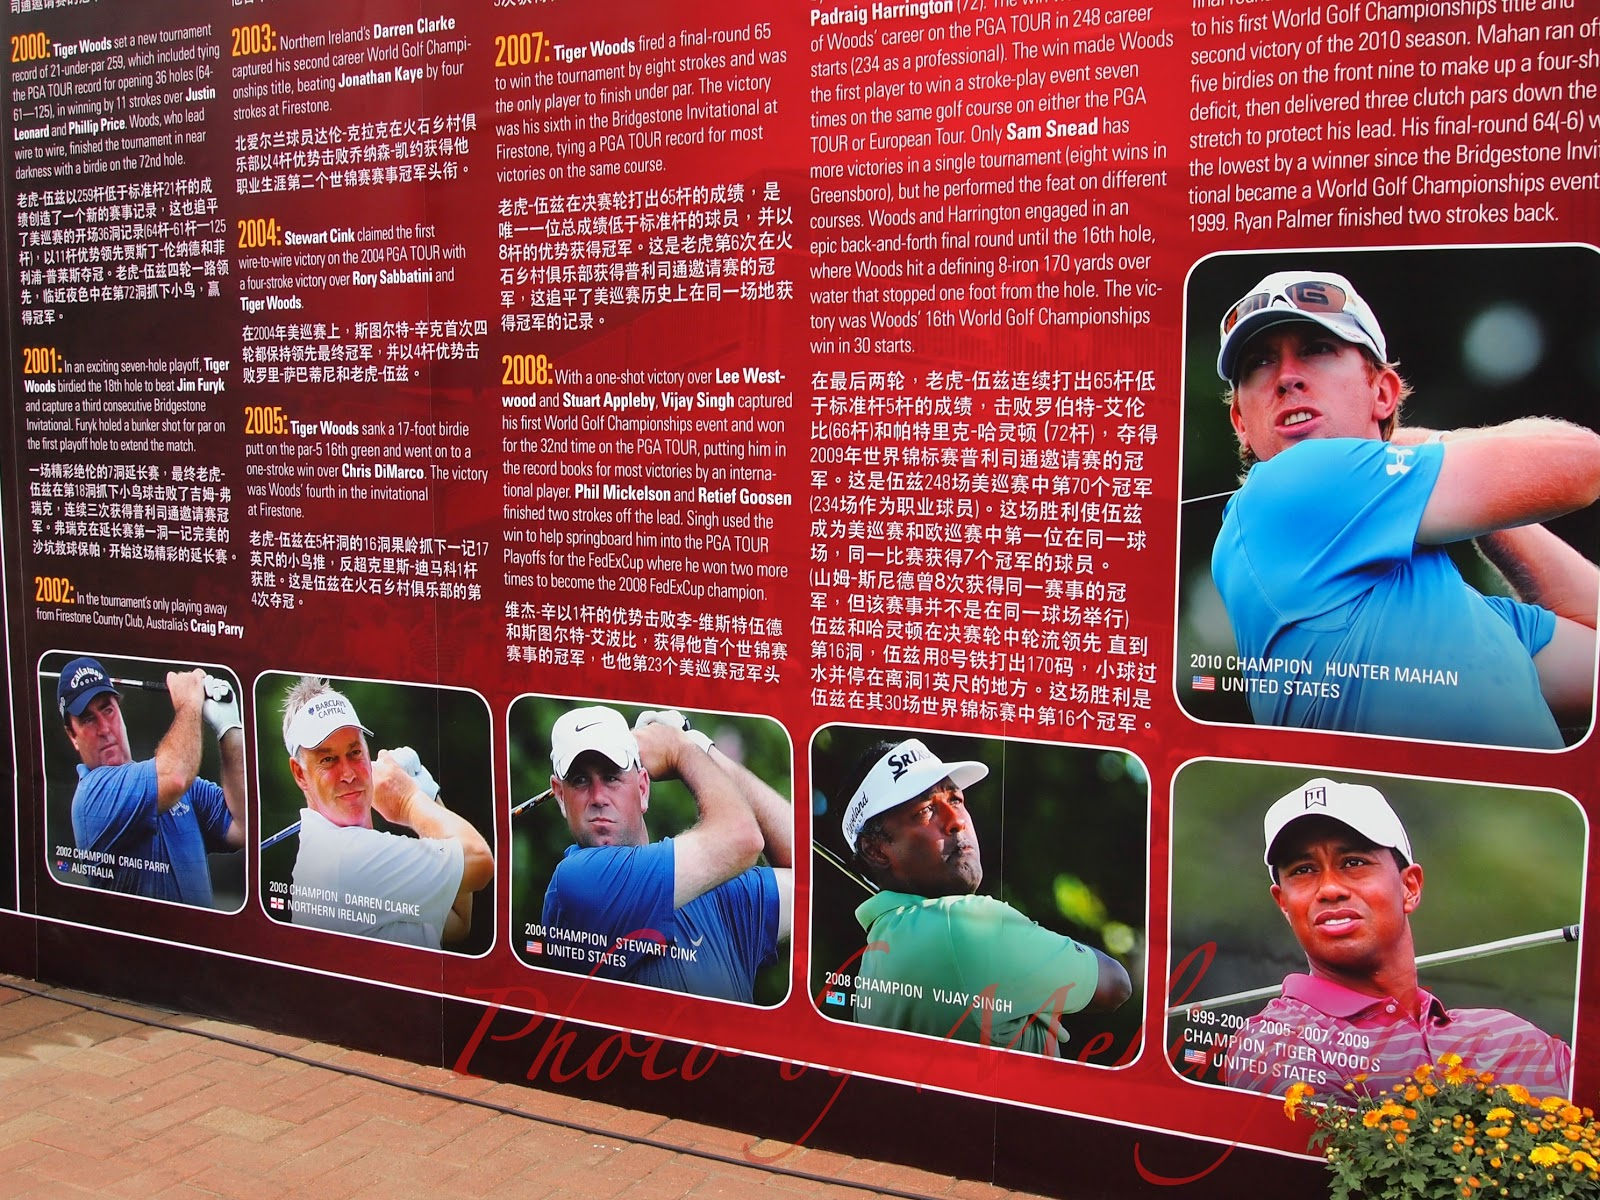 wgc-hsbc golf champions pro-am Competition shanghai sheshan